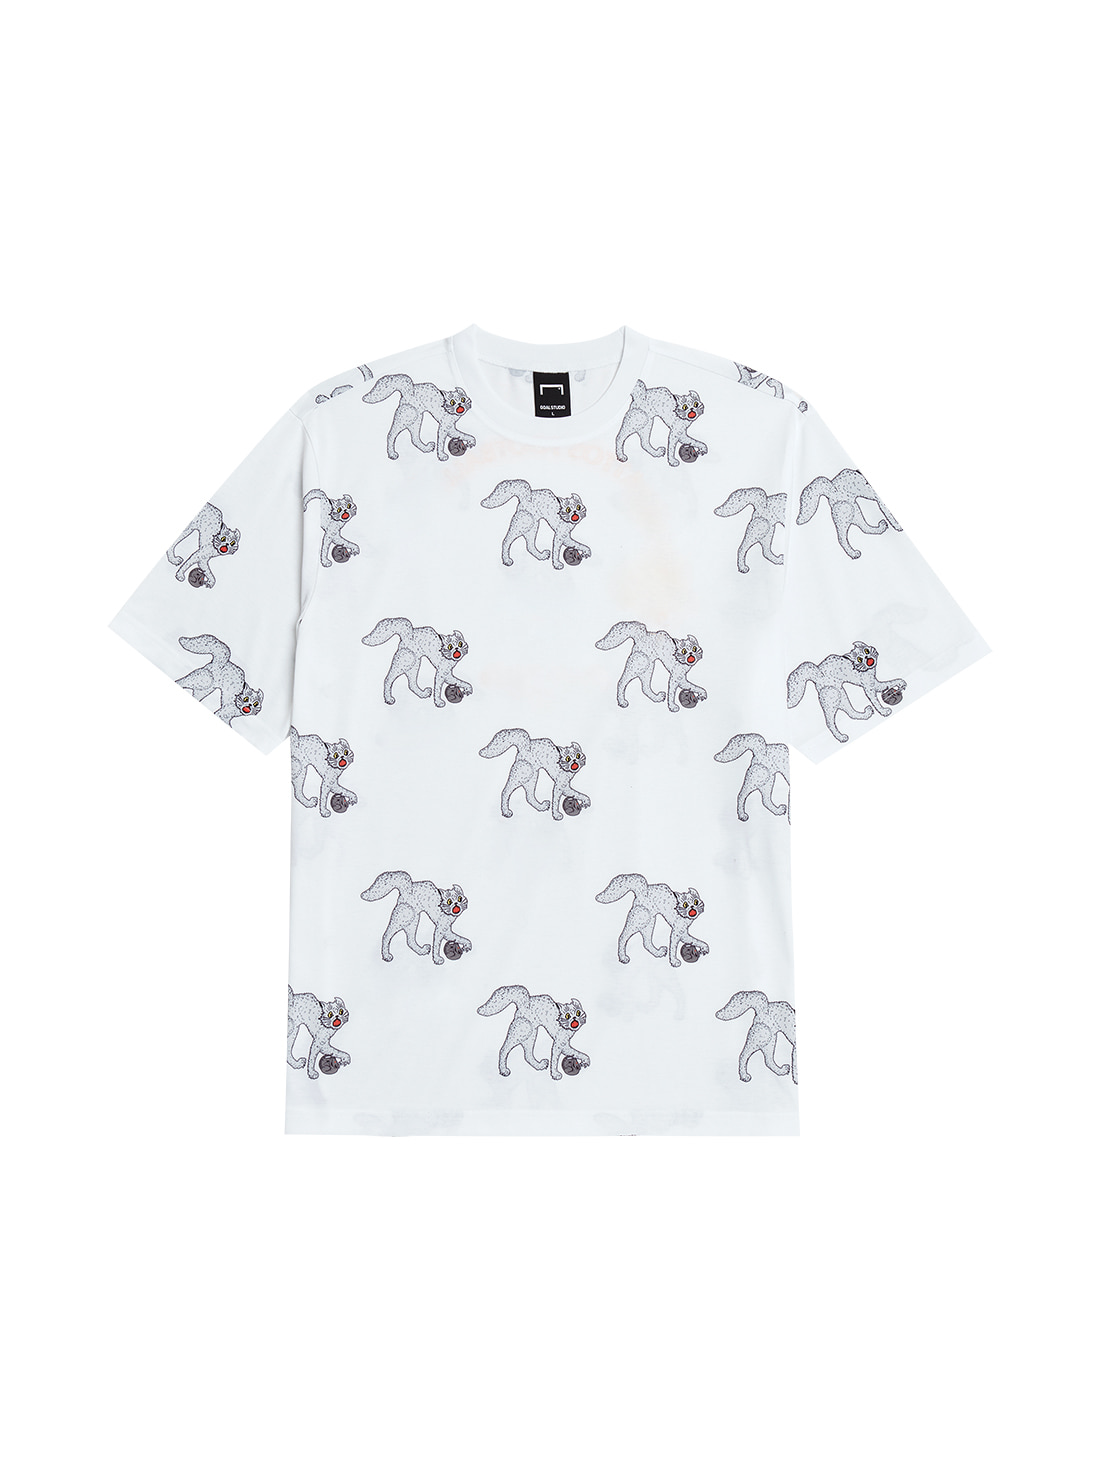 GOALSTUDIO MC ALL OVER PATTERN TEE - WHITE